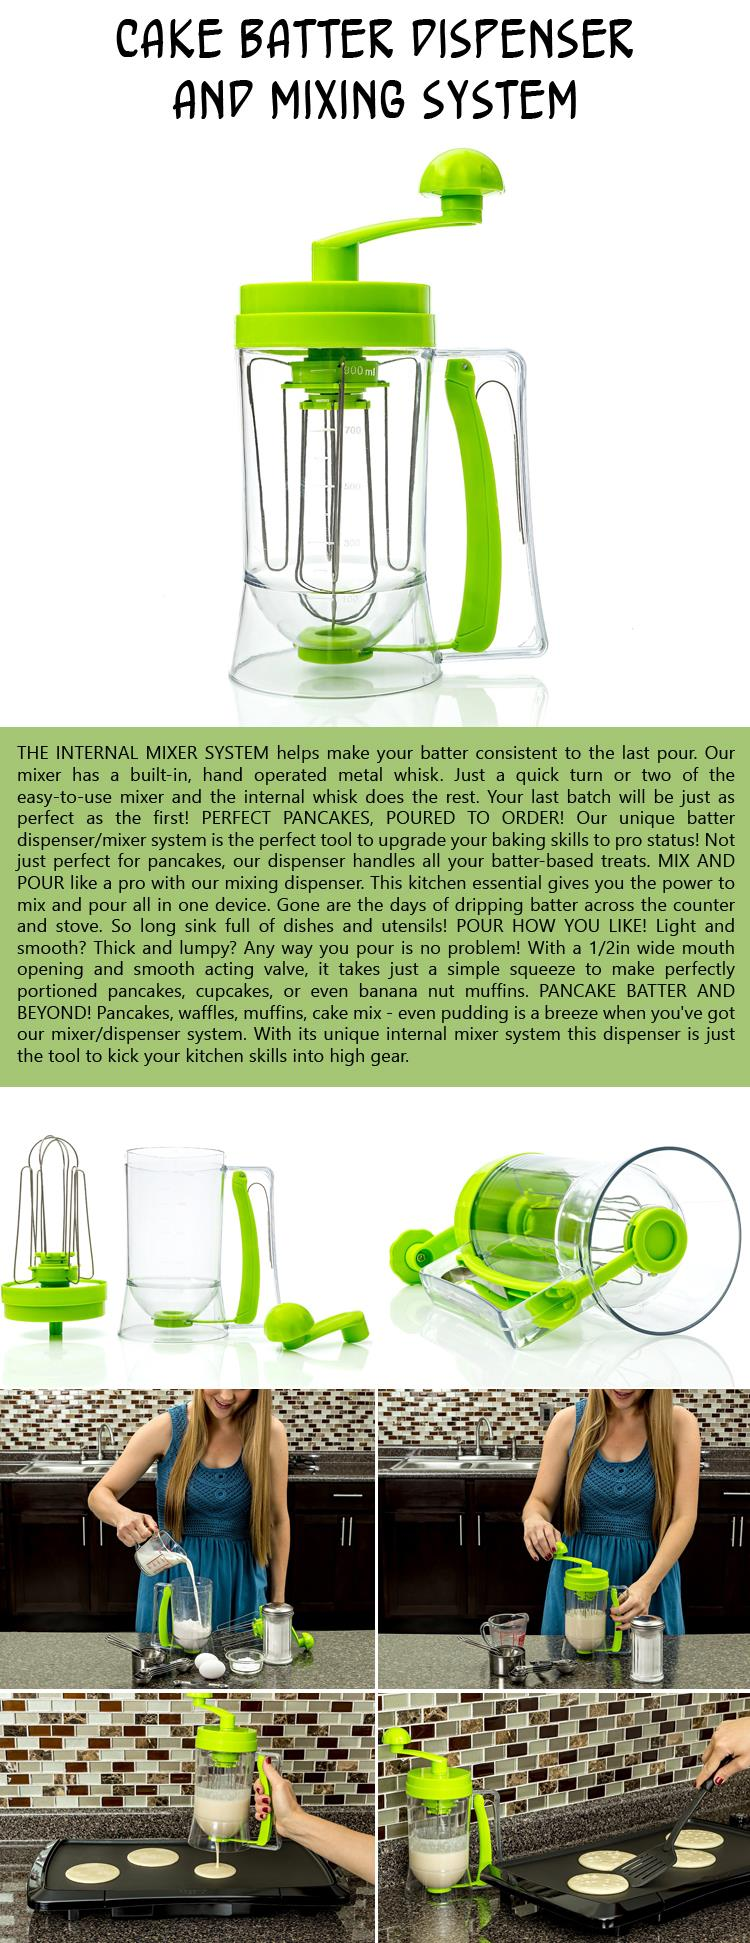 the Cake Batter Dispenser and Mixing System